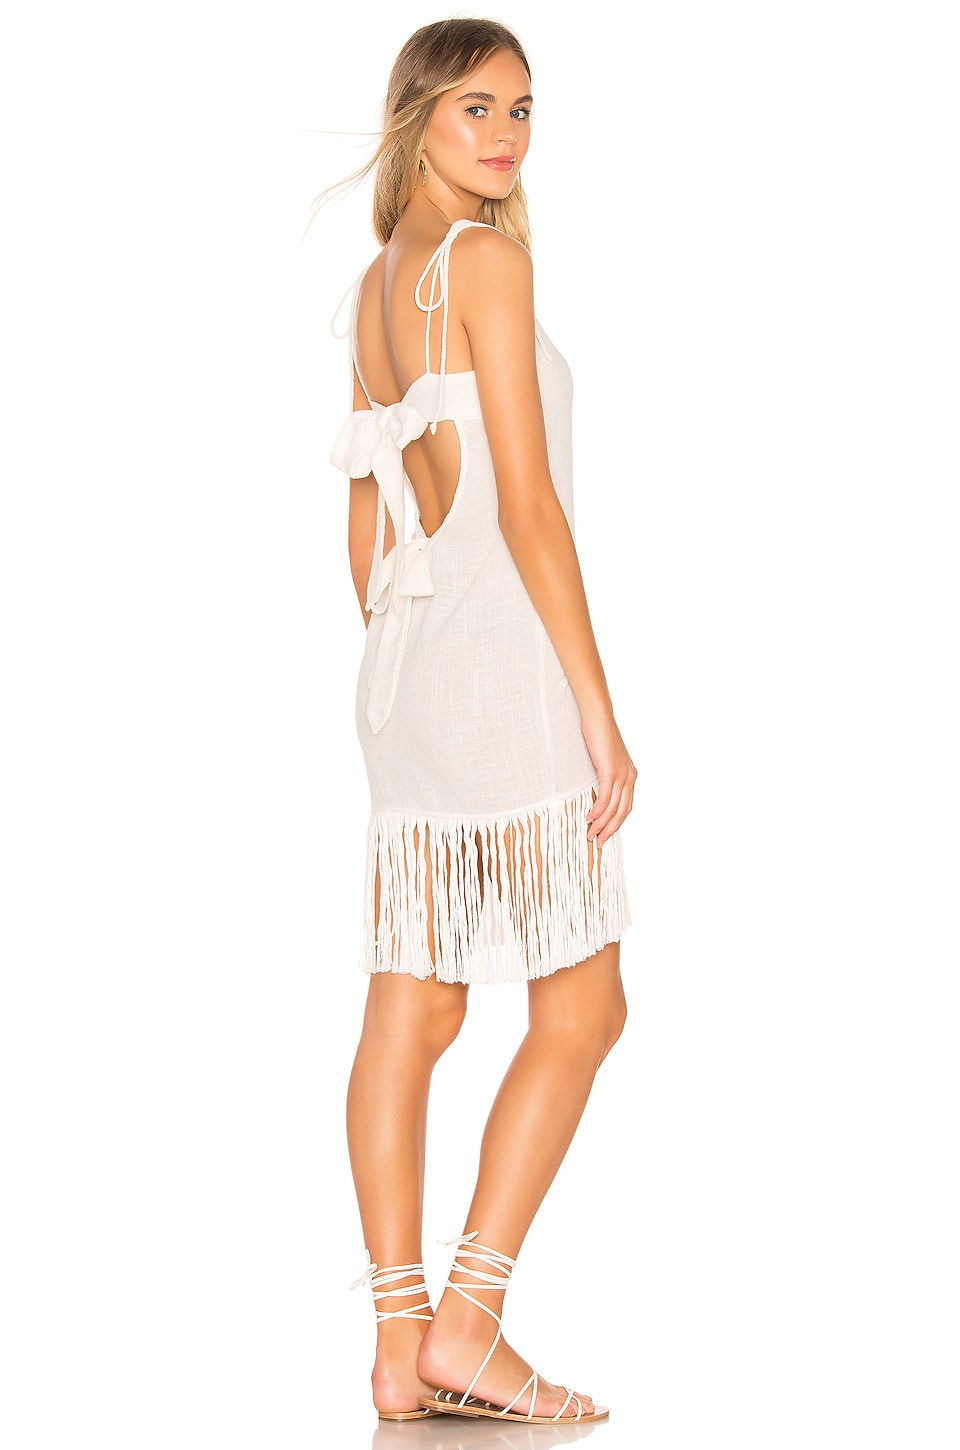 lovewave Wrapped Dress in White